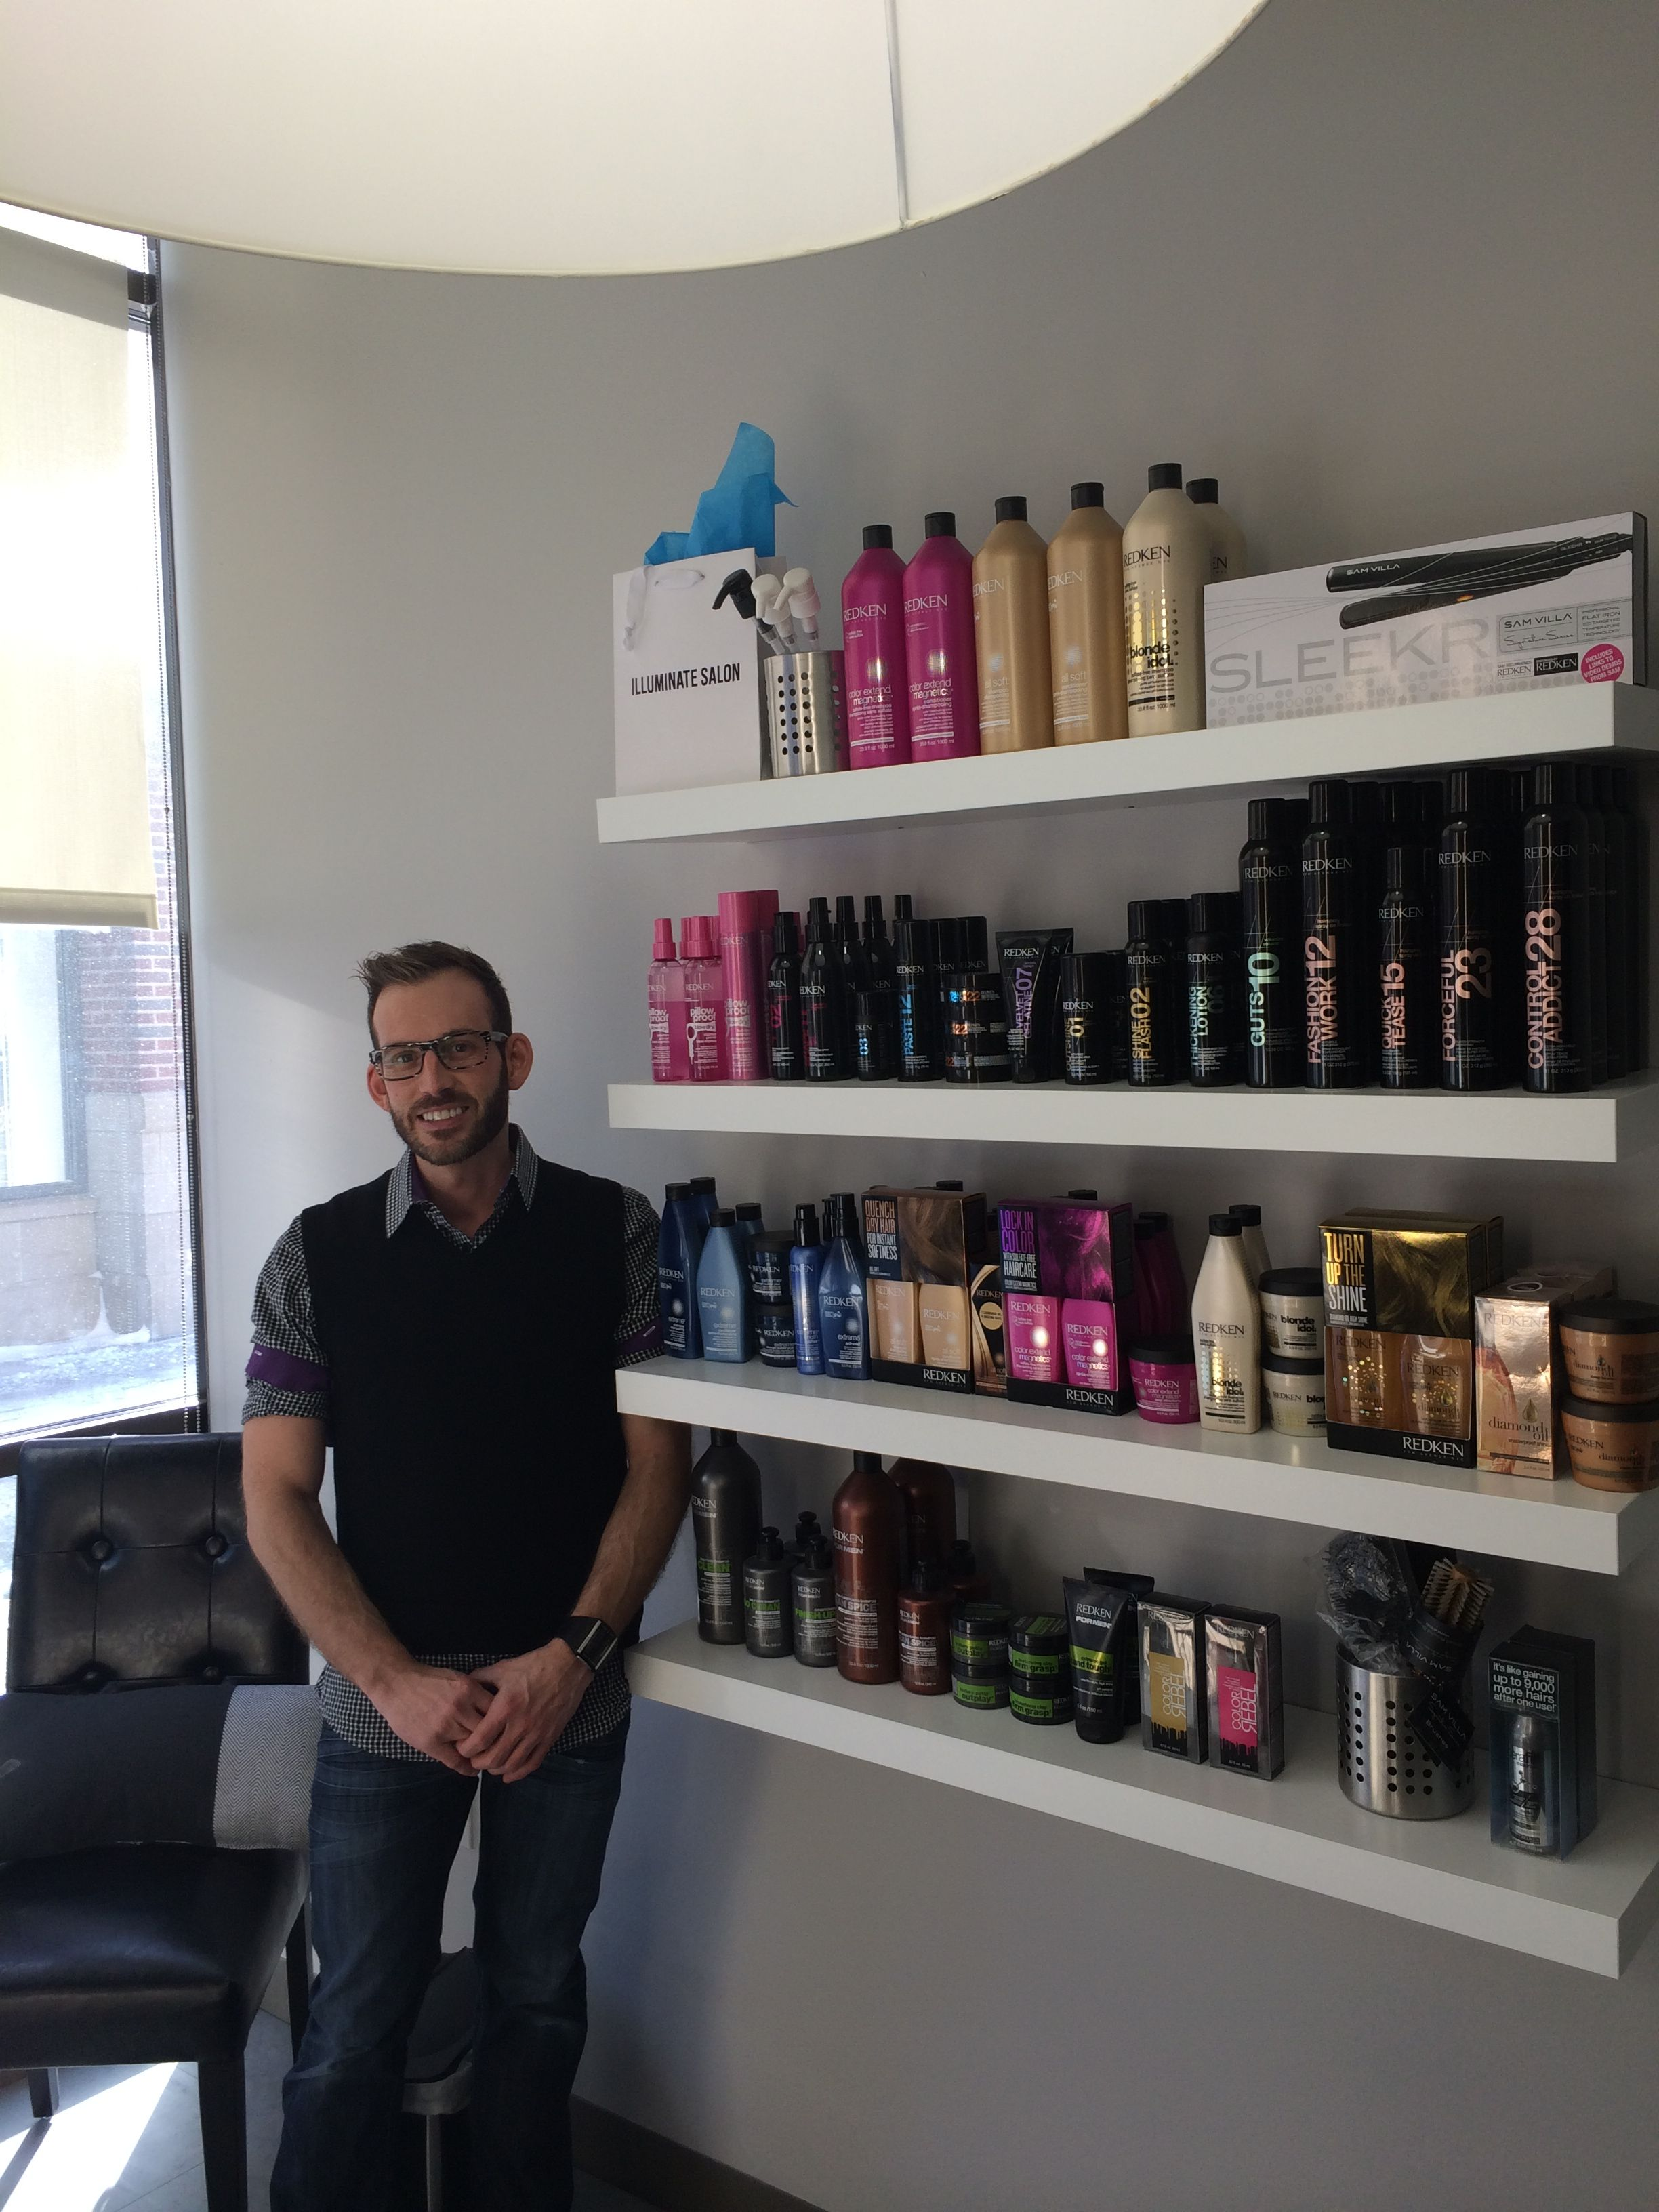 """Salon Lofts Westgate Loft Owner Louie Leonetti says """"I love my freedom, choosing my own products!! I enjoy my community at Westgate. Being my own boss. Salon Lofts Rocks!"""" #salonlofts #salonloftscleveland #louieleonetti #freedomfriday"""